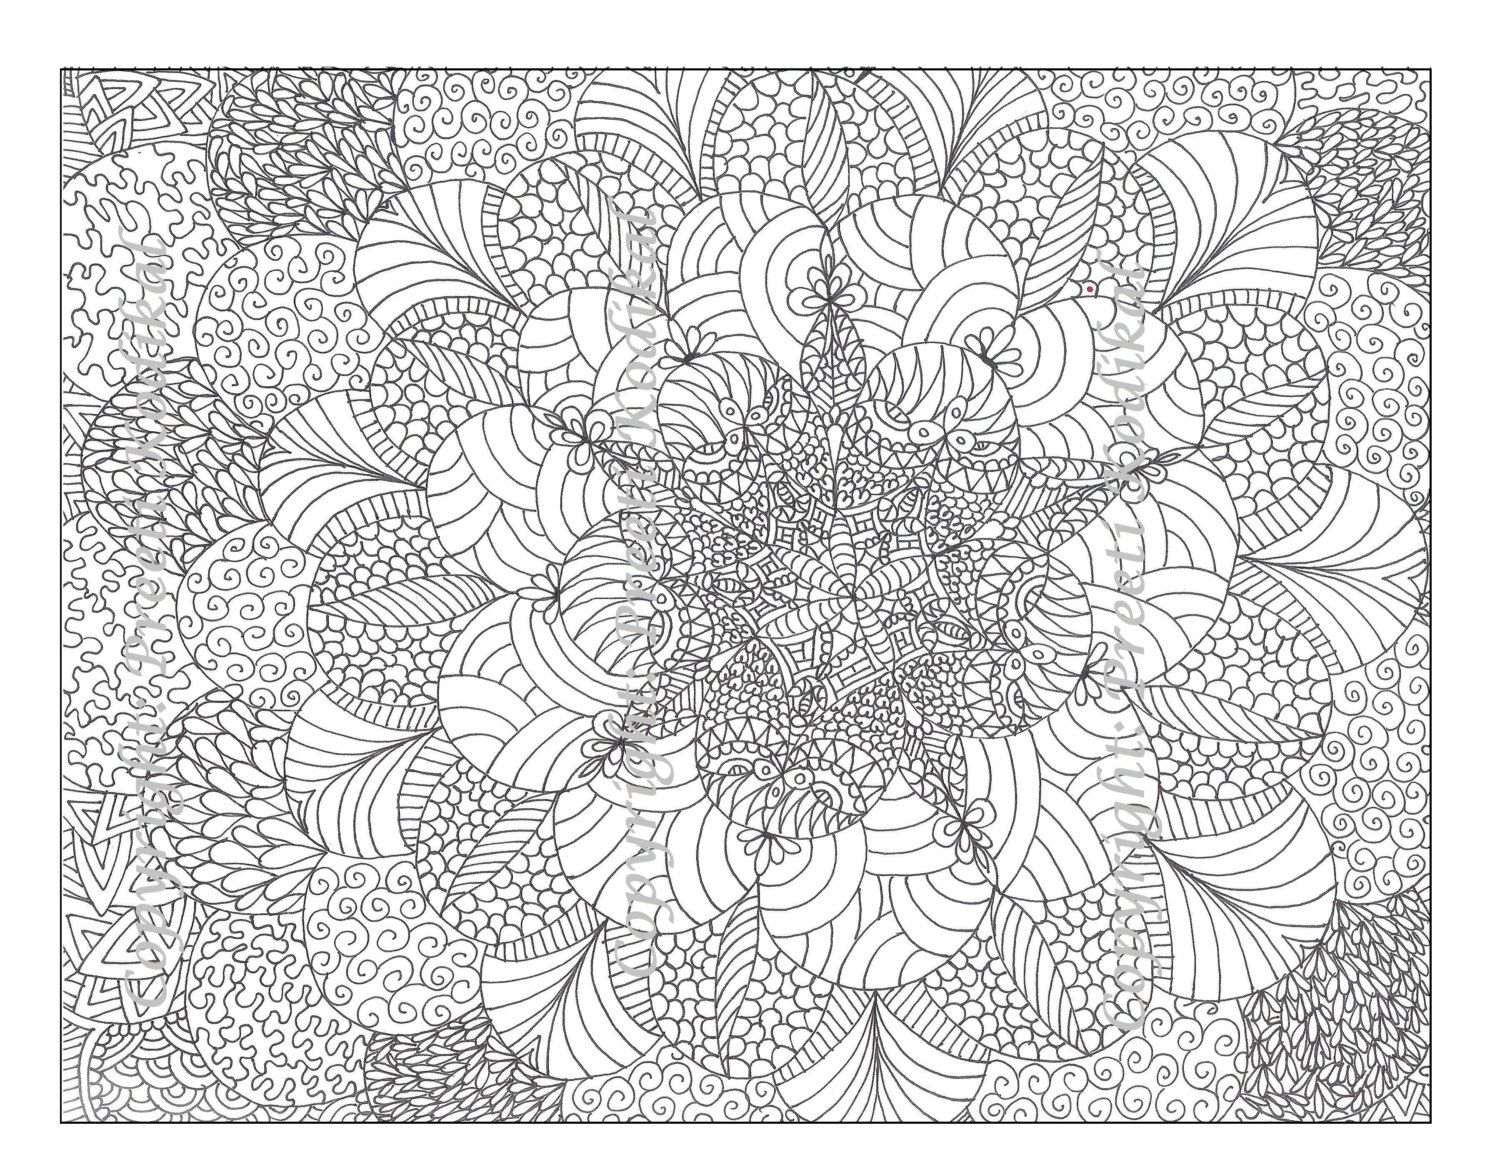 Pen illustration printable coloring page zentangle inspired henna or ...